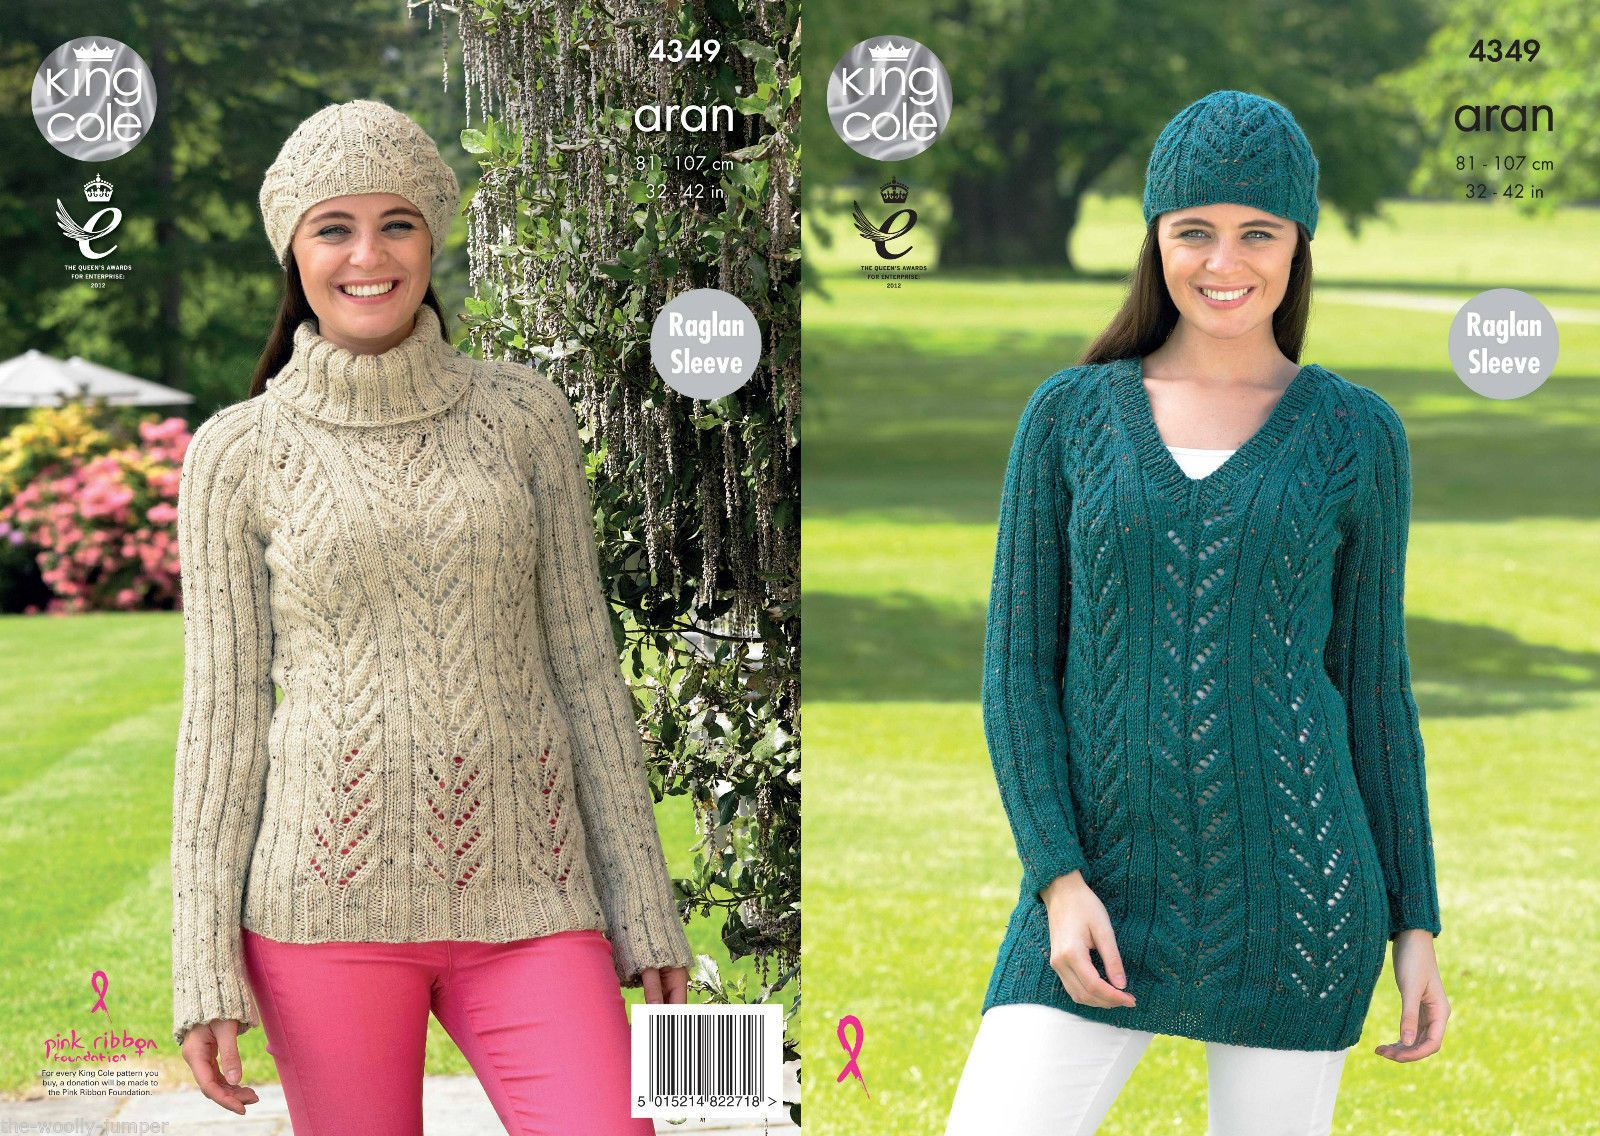 4349 - KING COLE FASHION ARAN SWEATER TUNIC & HAT KNITTING PATTERN ...